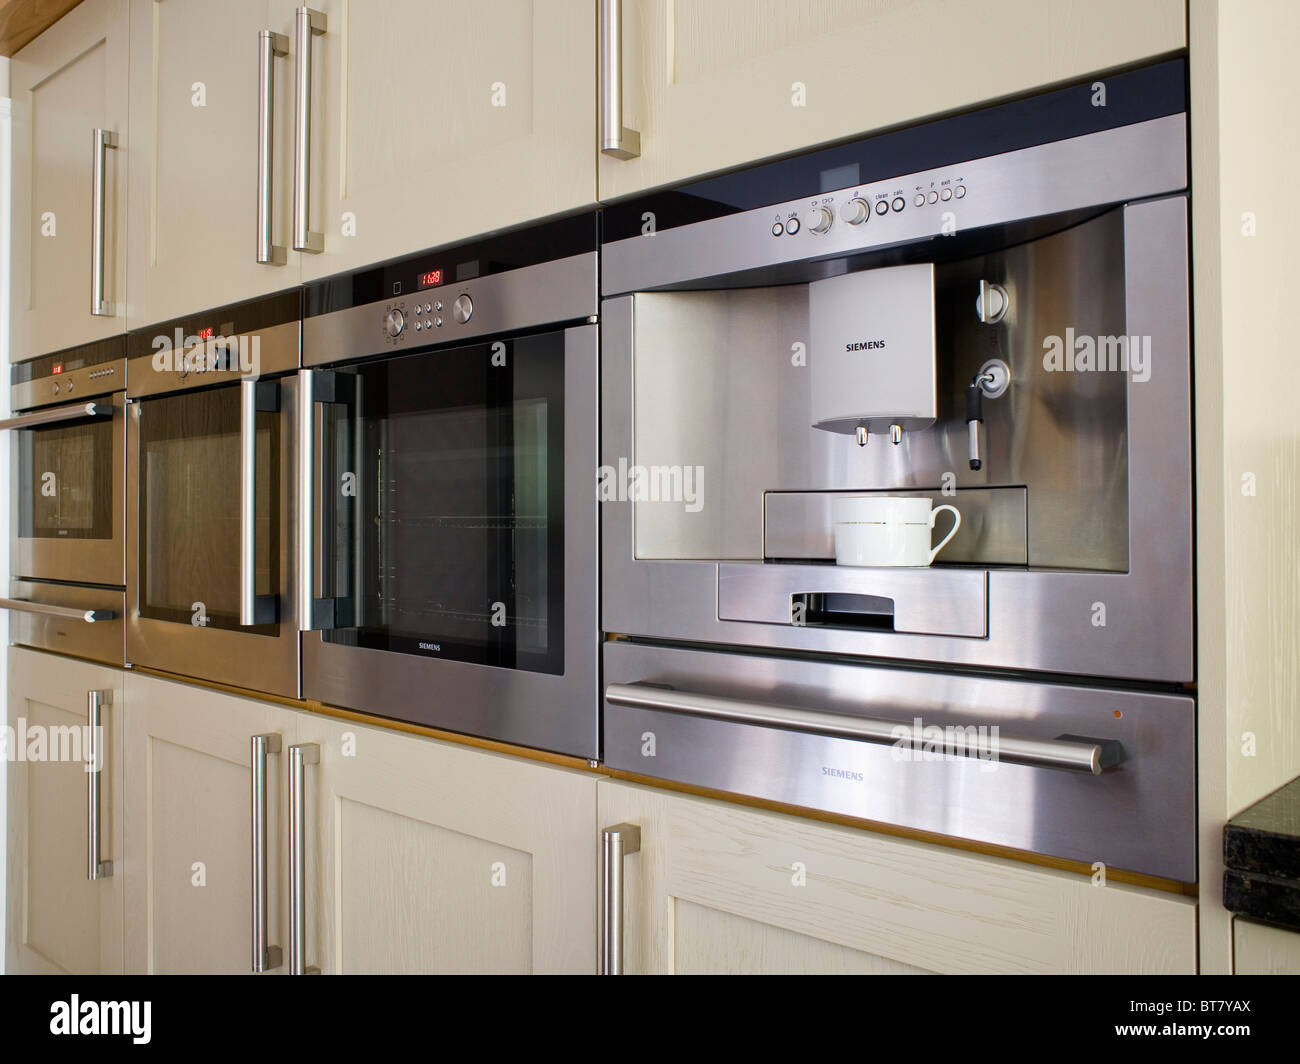 Fitted Kitchen Integral Oven In Fitted Unit In Modern Country Kitchen With Pale